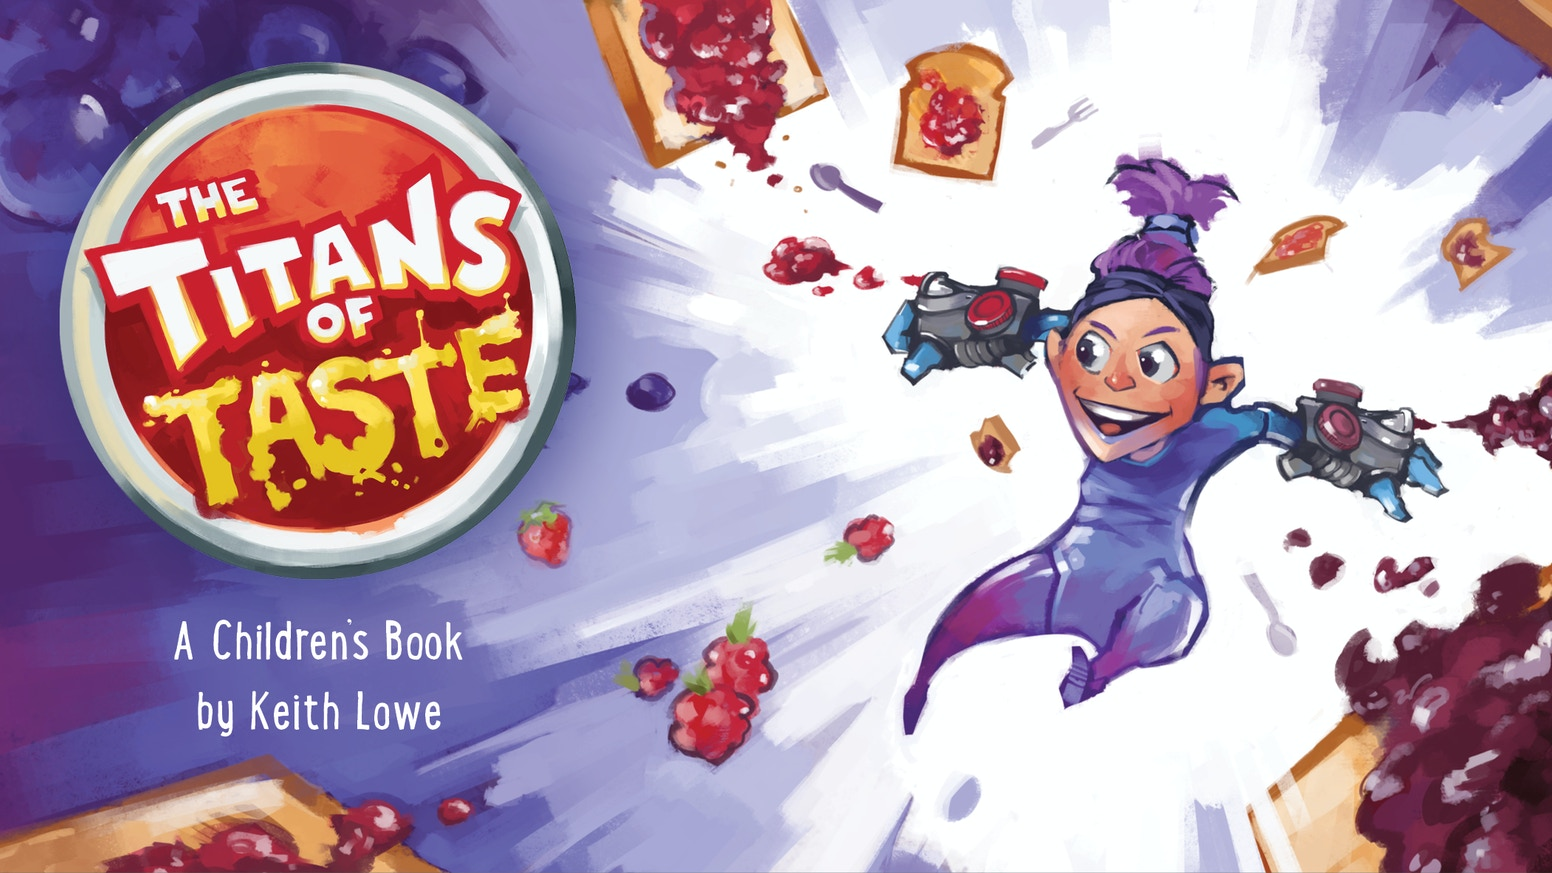 A lighthearted children's book, with plenty of ketchup, mustard, and lots of fun!